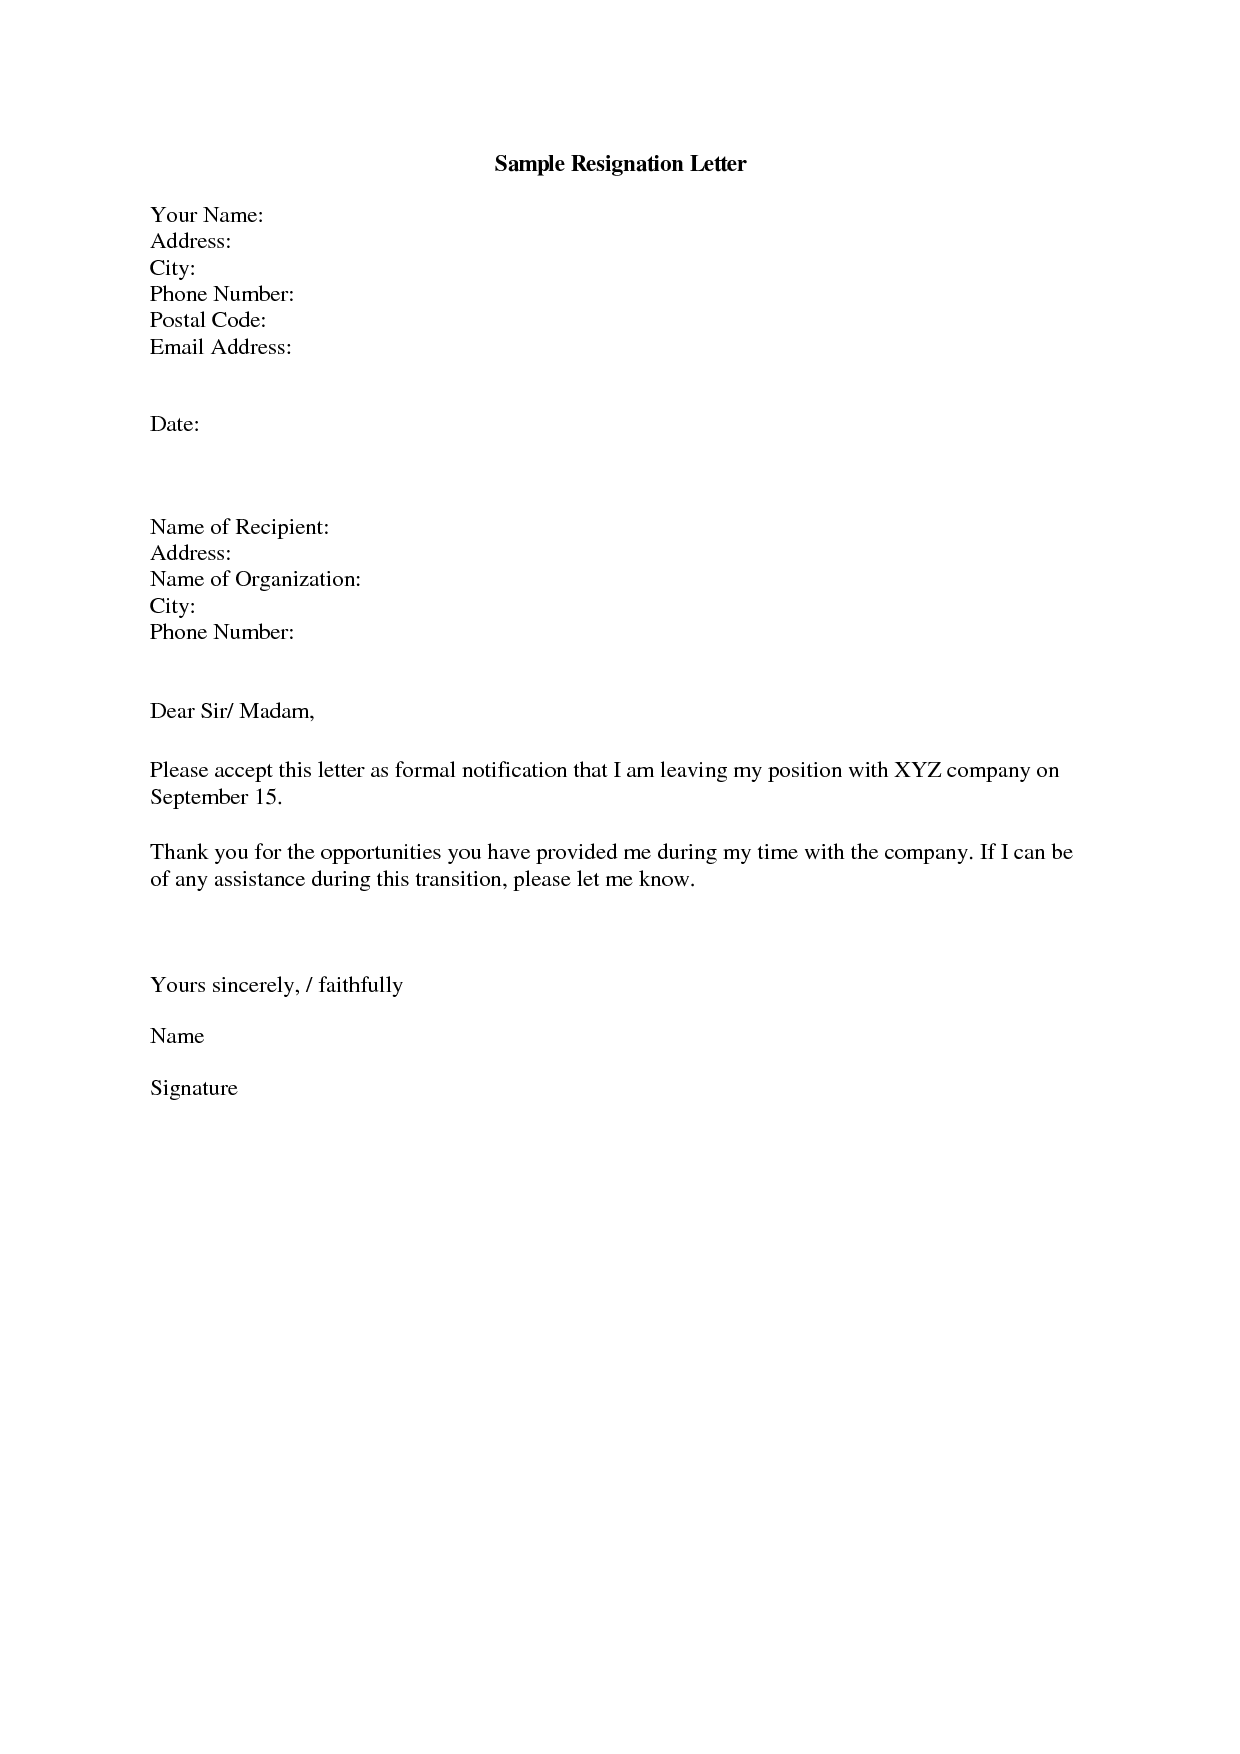 Job Resignation Letter Sample Short and Sweet Resignation Letter